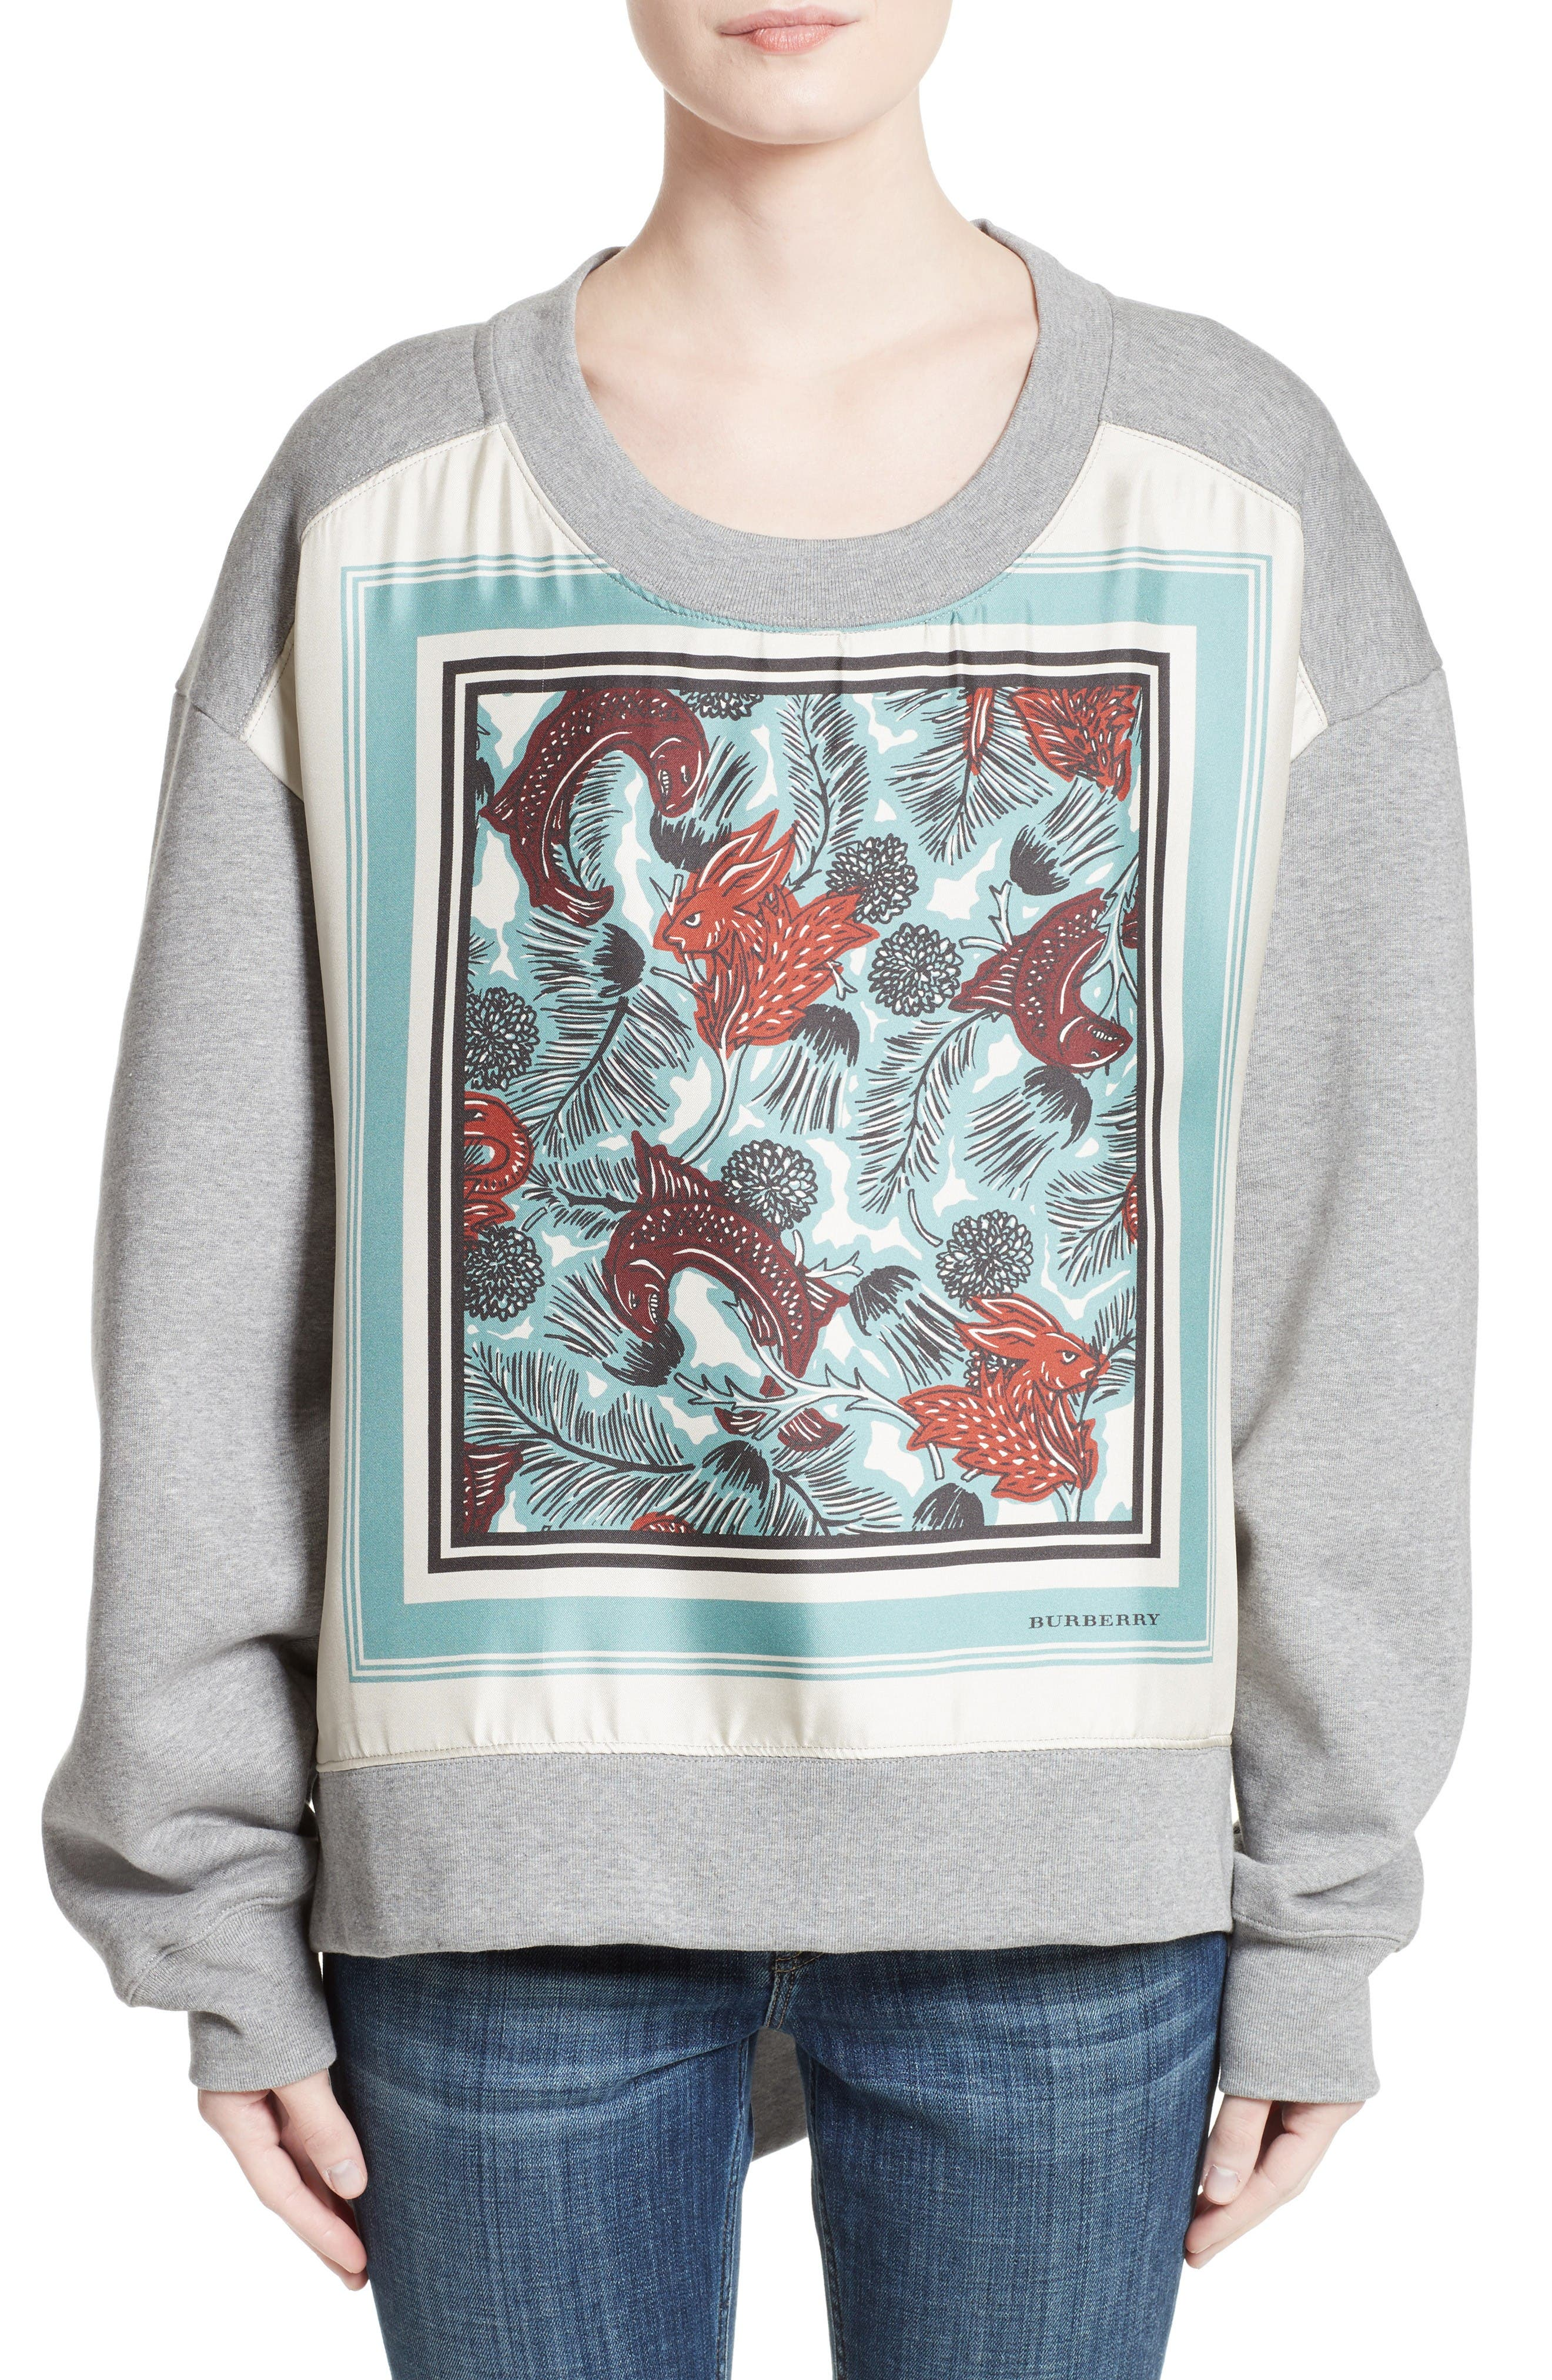 Burberry Mente Graphic High/Low Sweatshirt